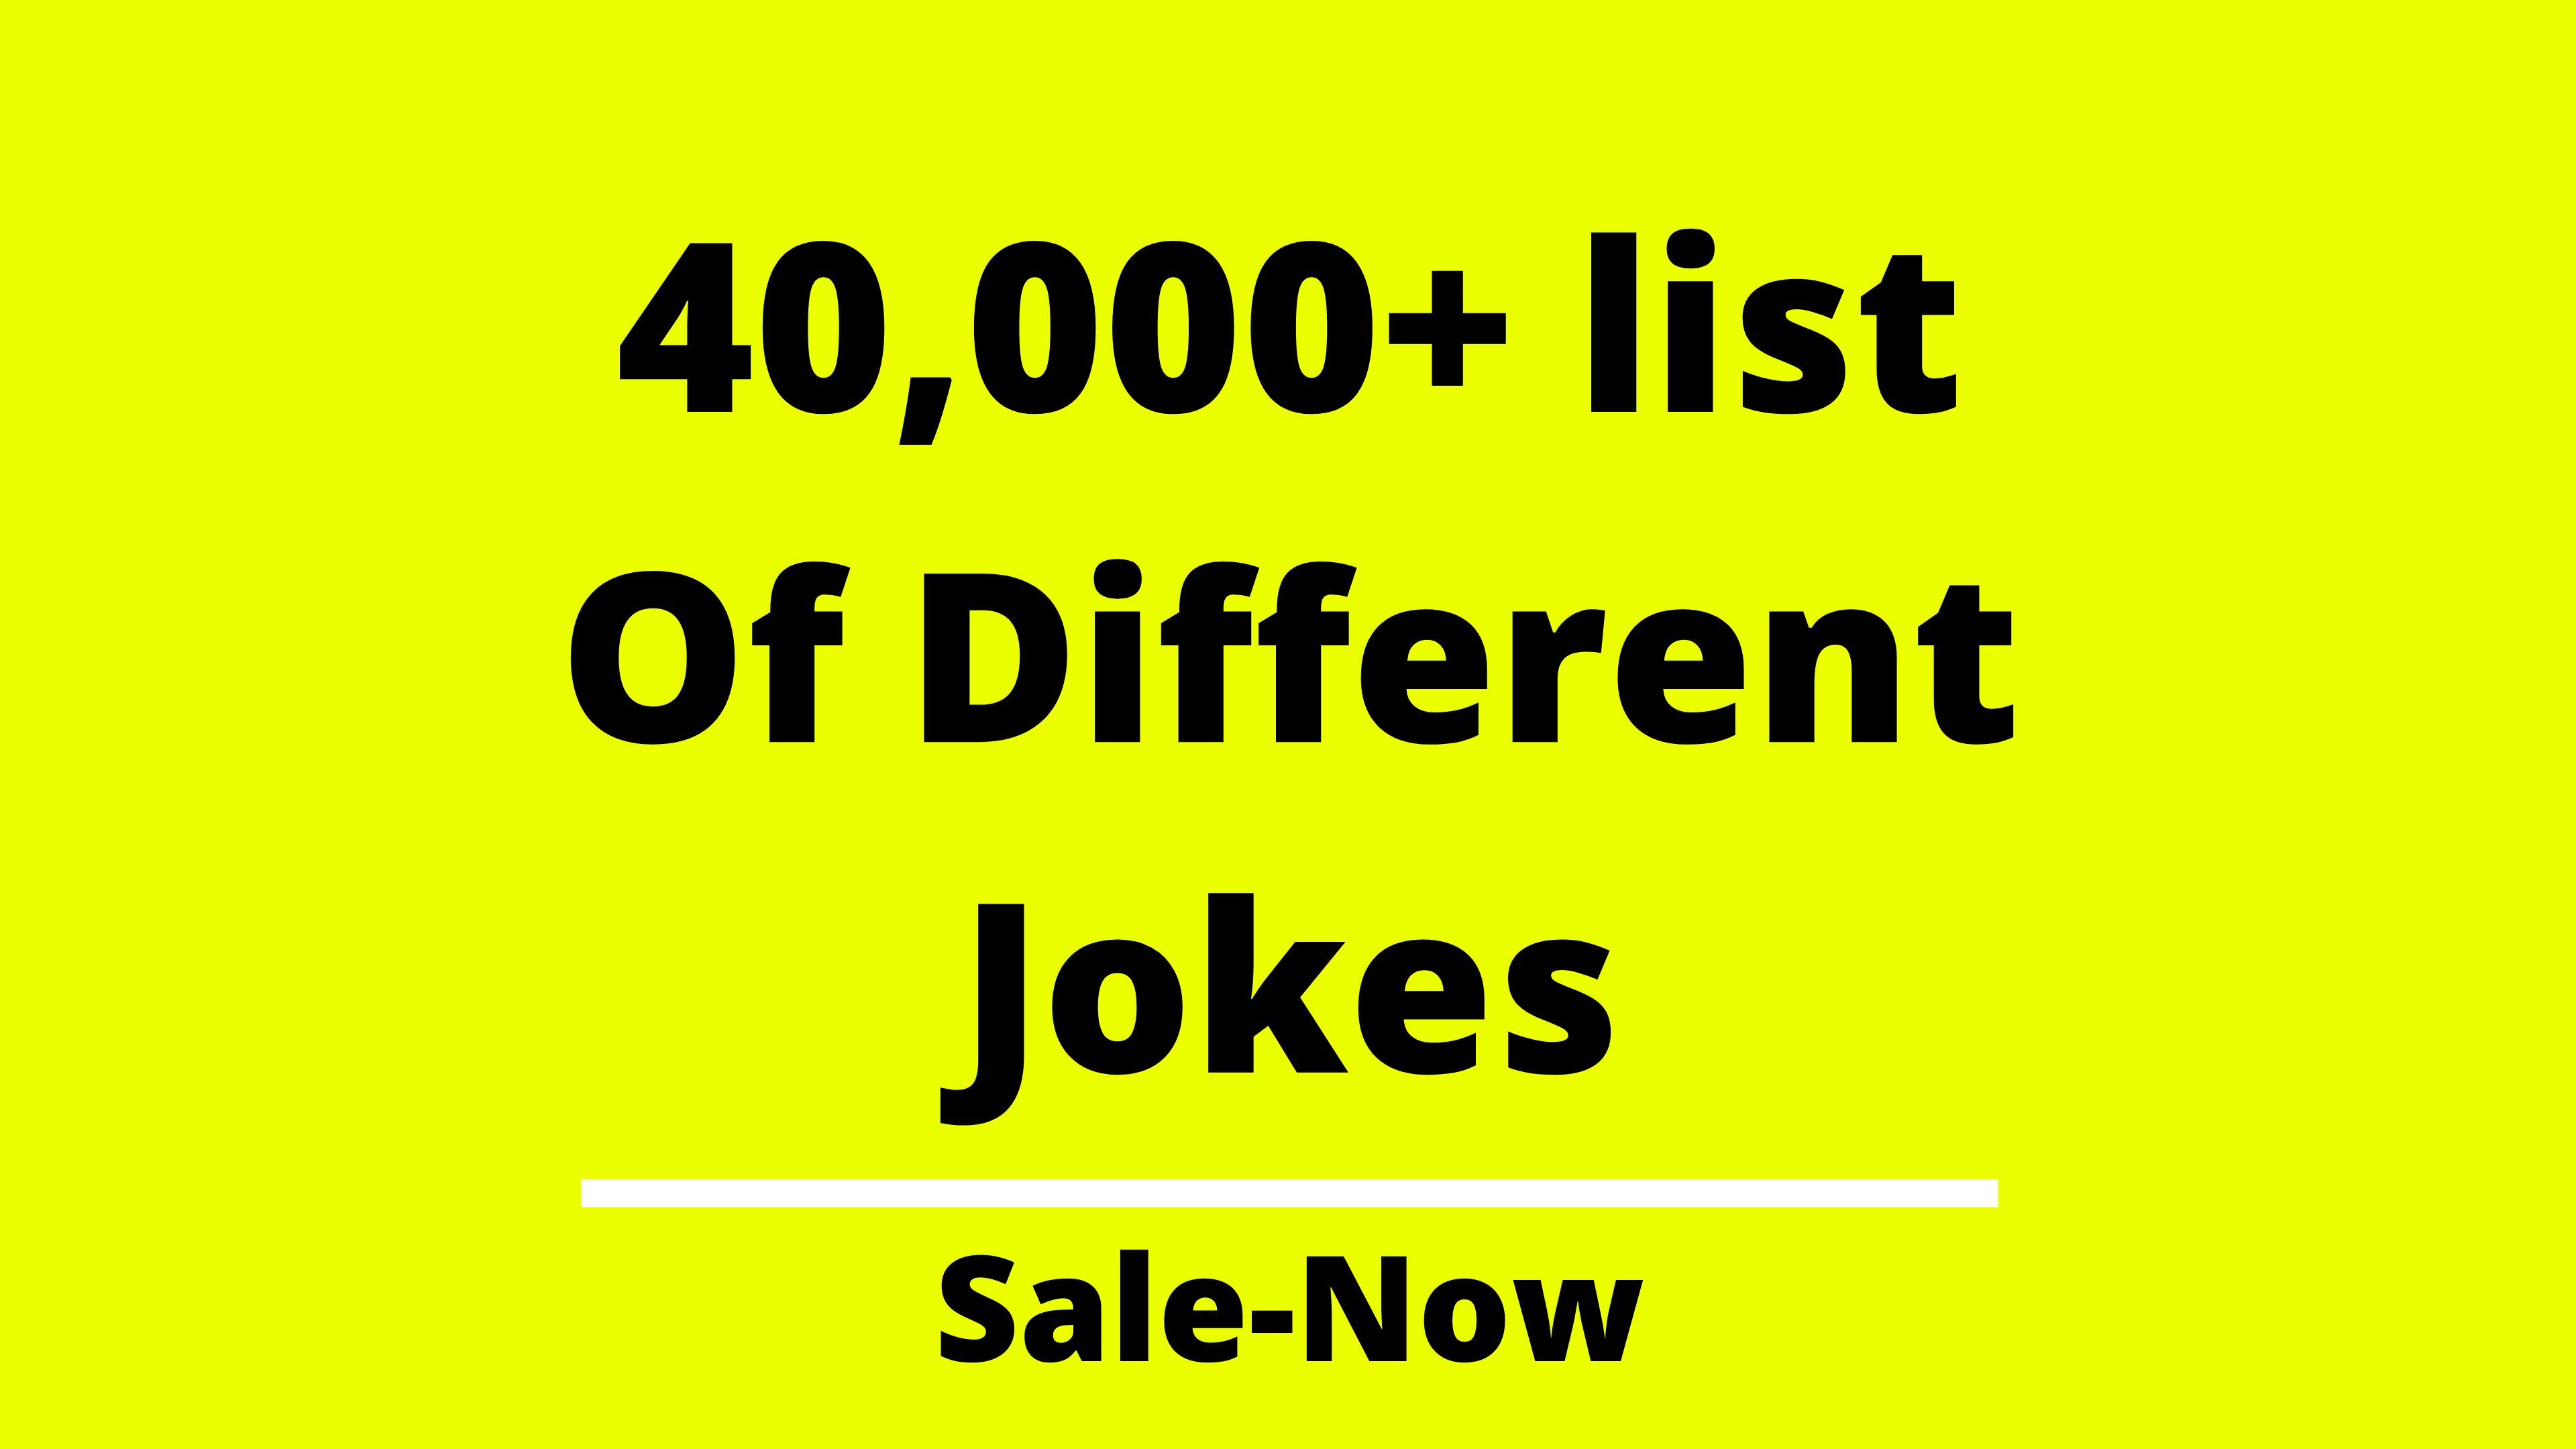 40,000+ List Of Different Jokes Used for blogging and social post